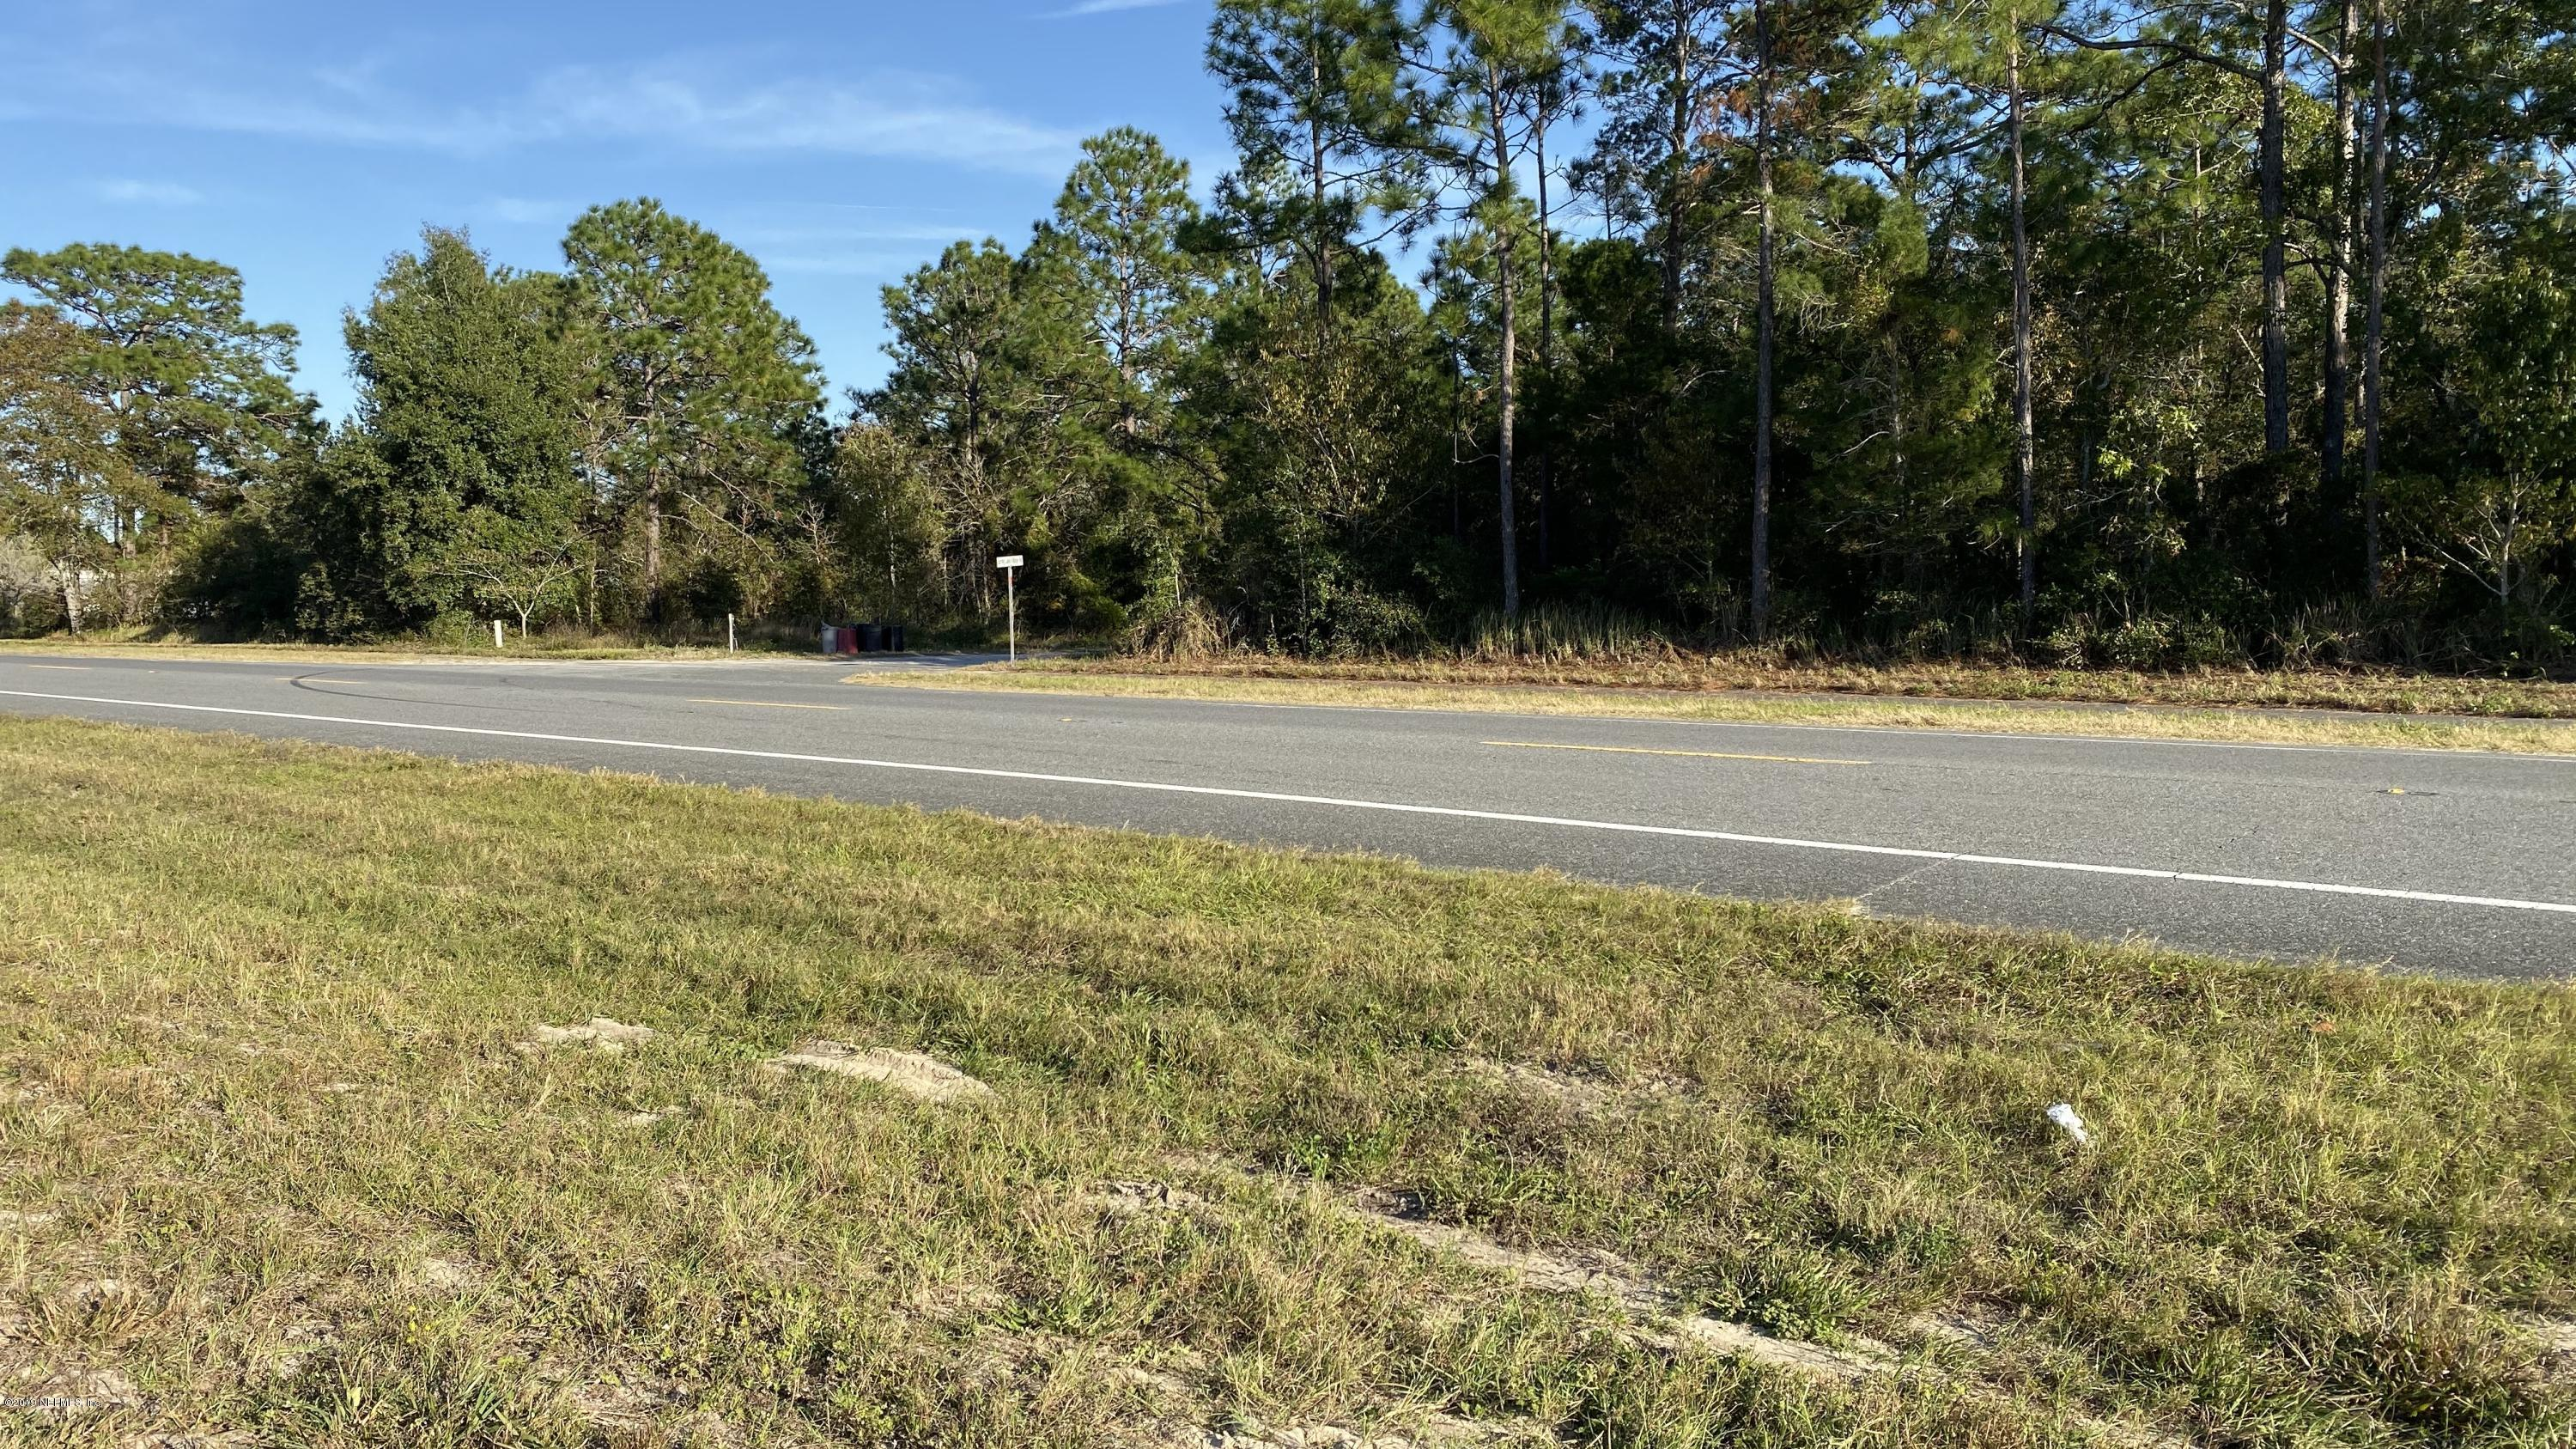 0 STATE ROAD 21, KEYSTONE HEIGHTS, FLORIDA 32656, ,Commercial,For sale,STATE ROAD 21,1026534